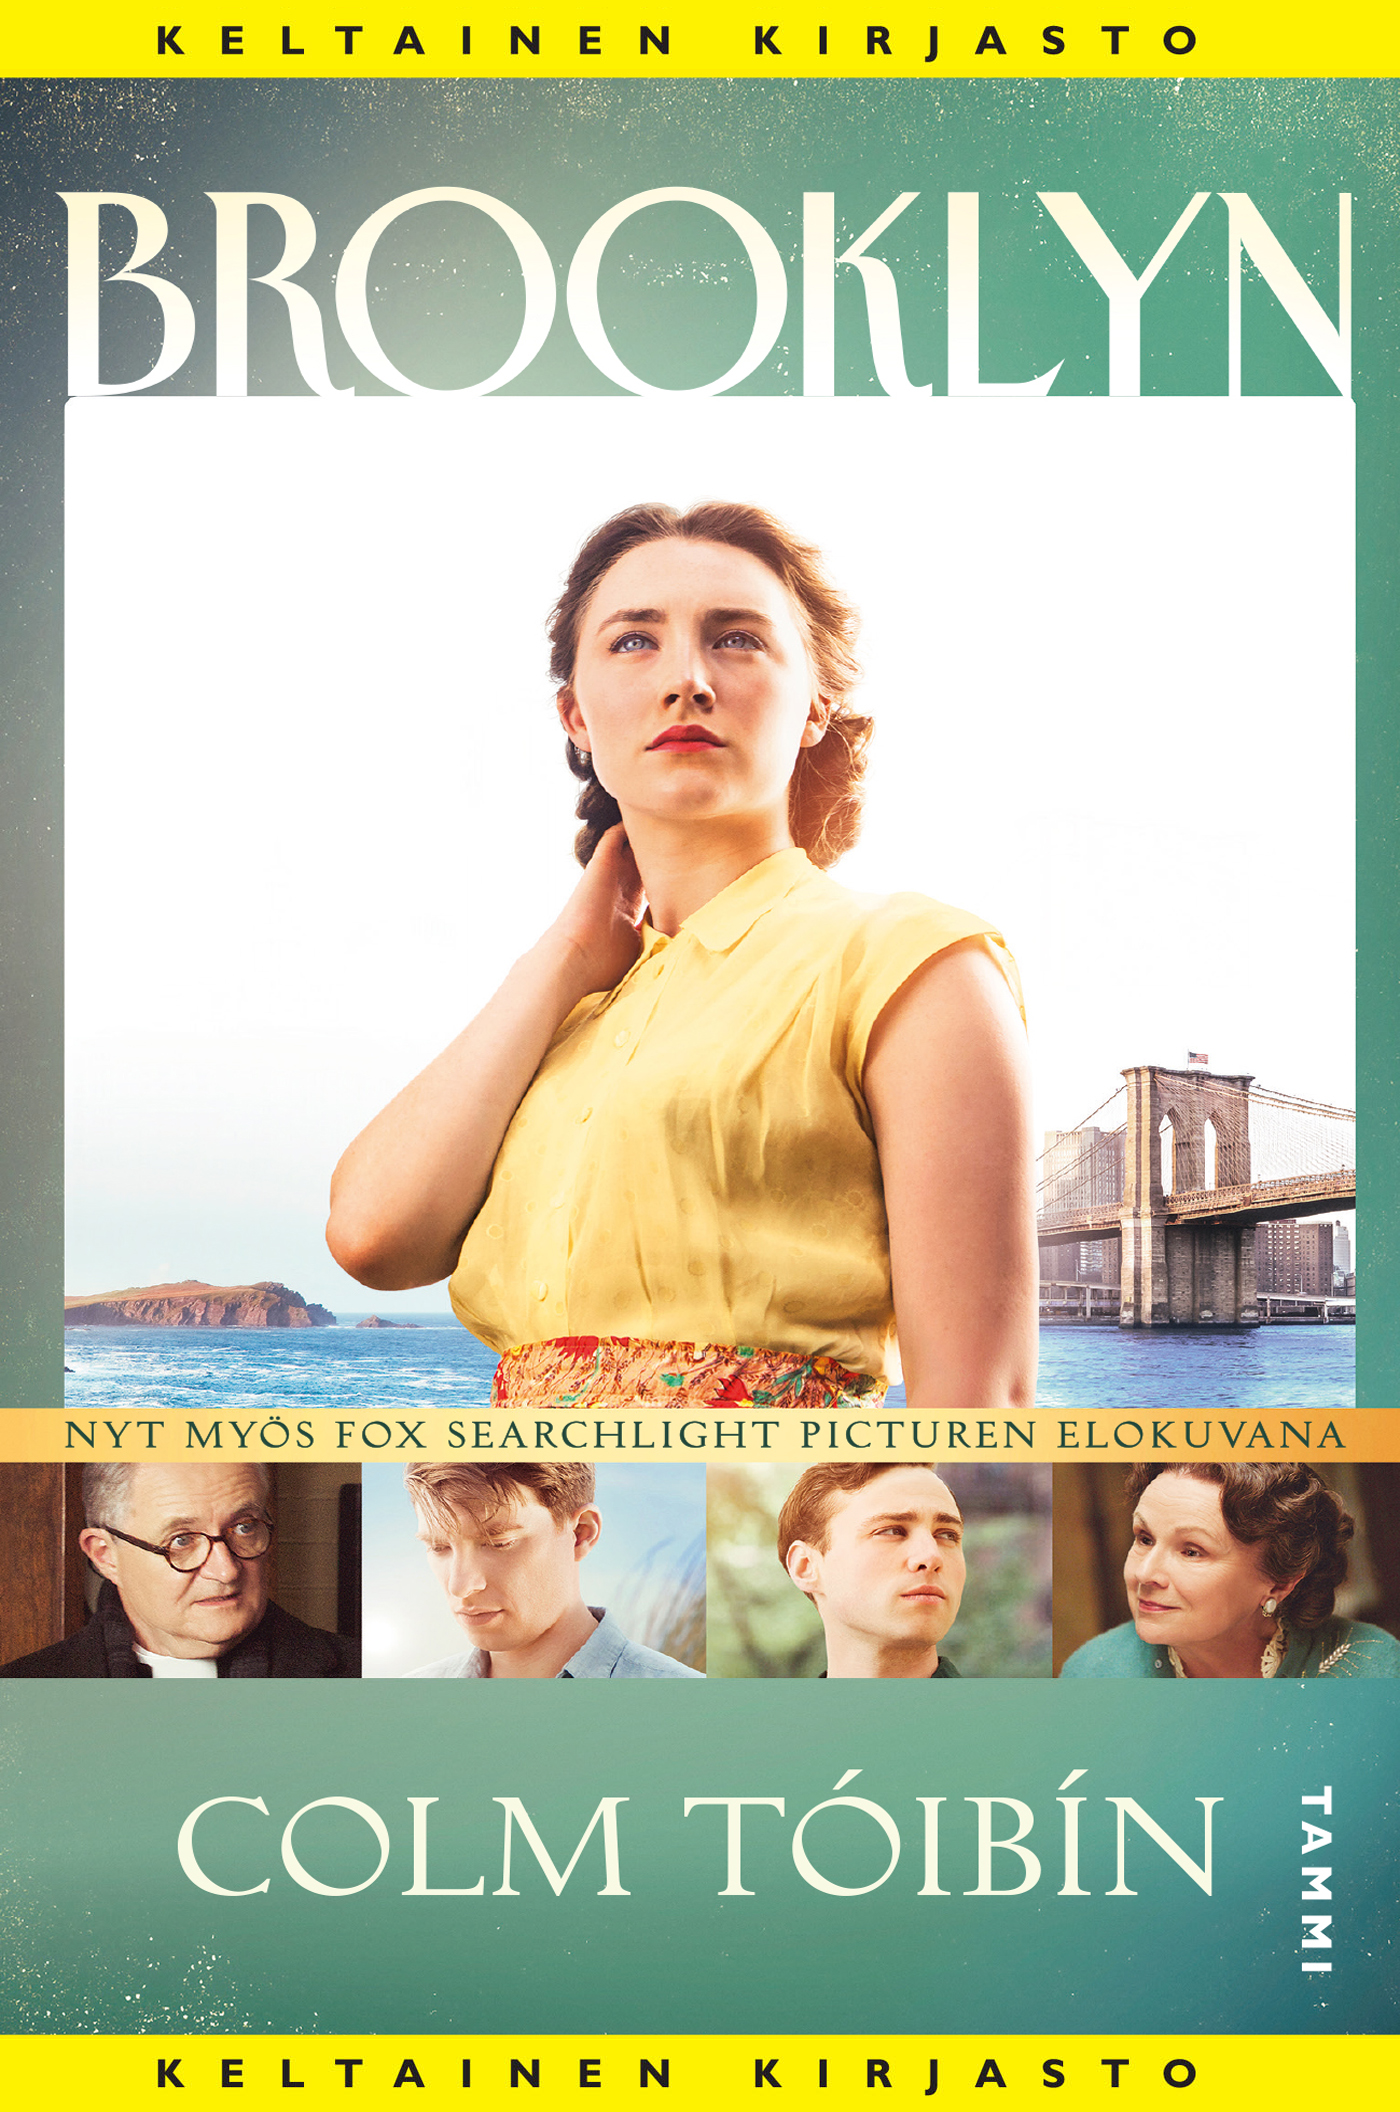 Tóibín, Colm - Brooklyn, ebook